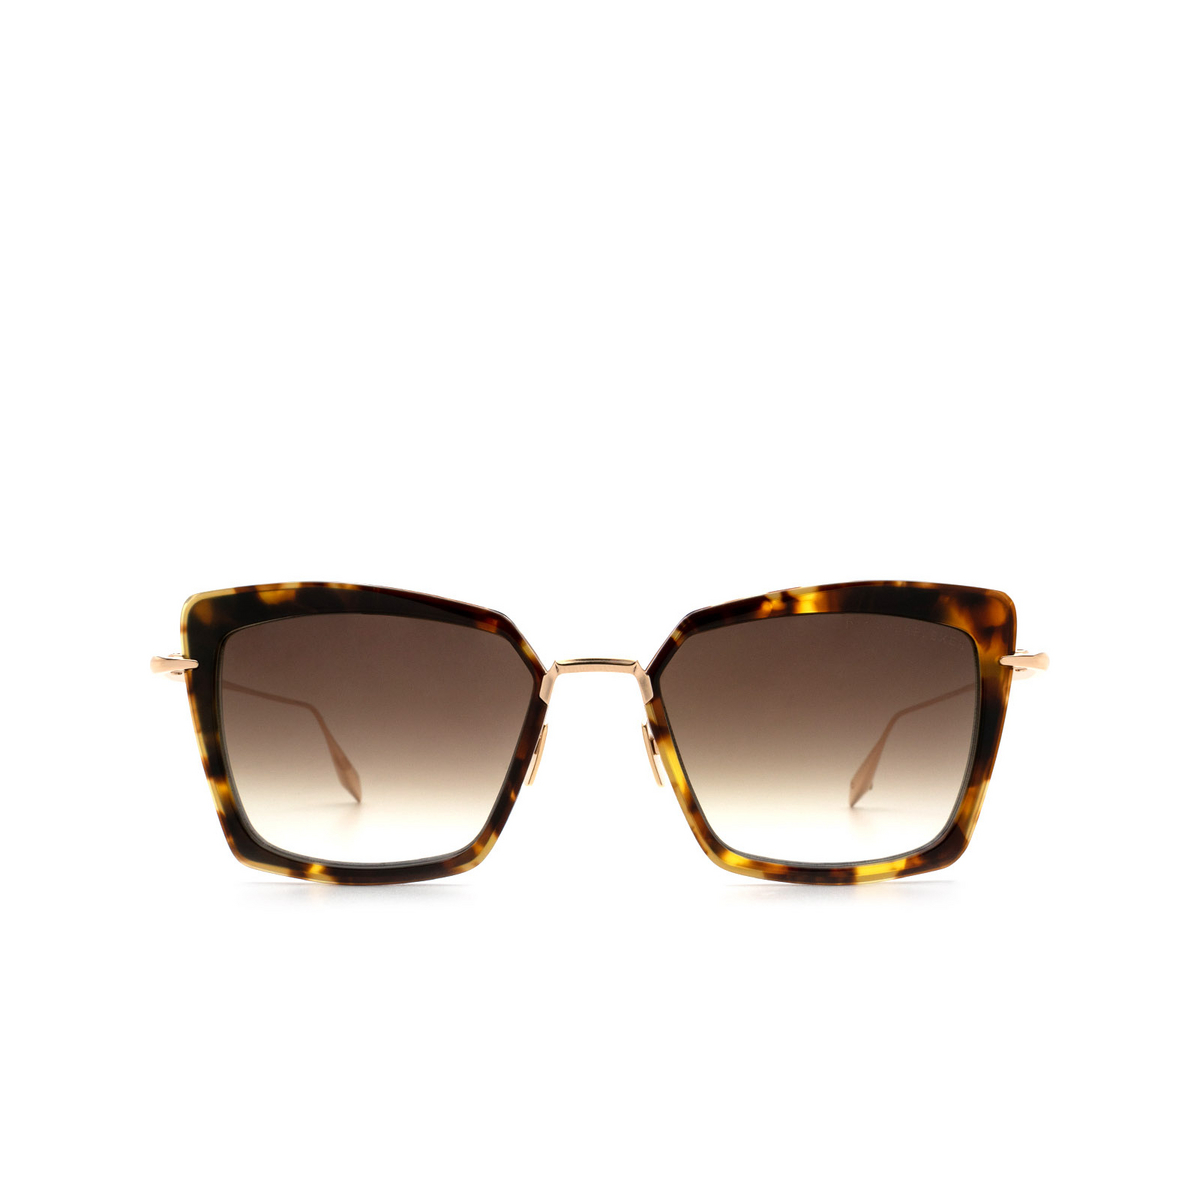 Dita® Butterfly Sunglasses: Perplexer DTS405-A-02 color Tortoise Gold Trt-gld - front view.